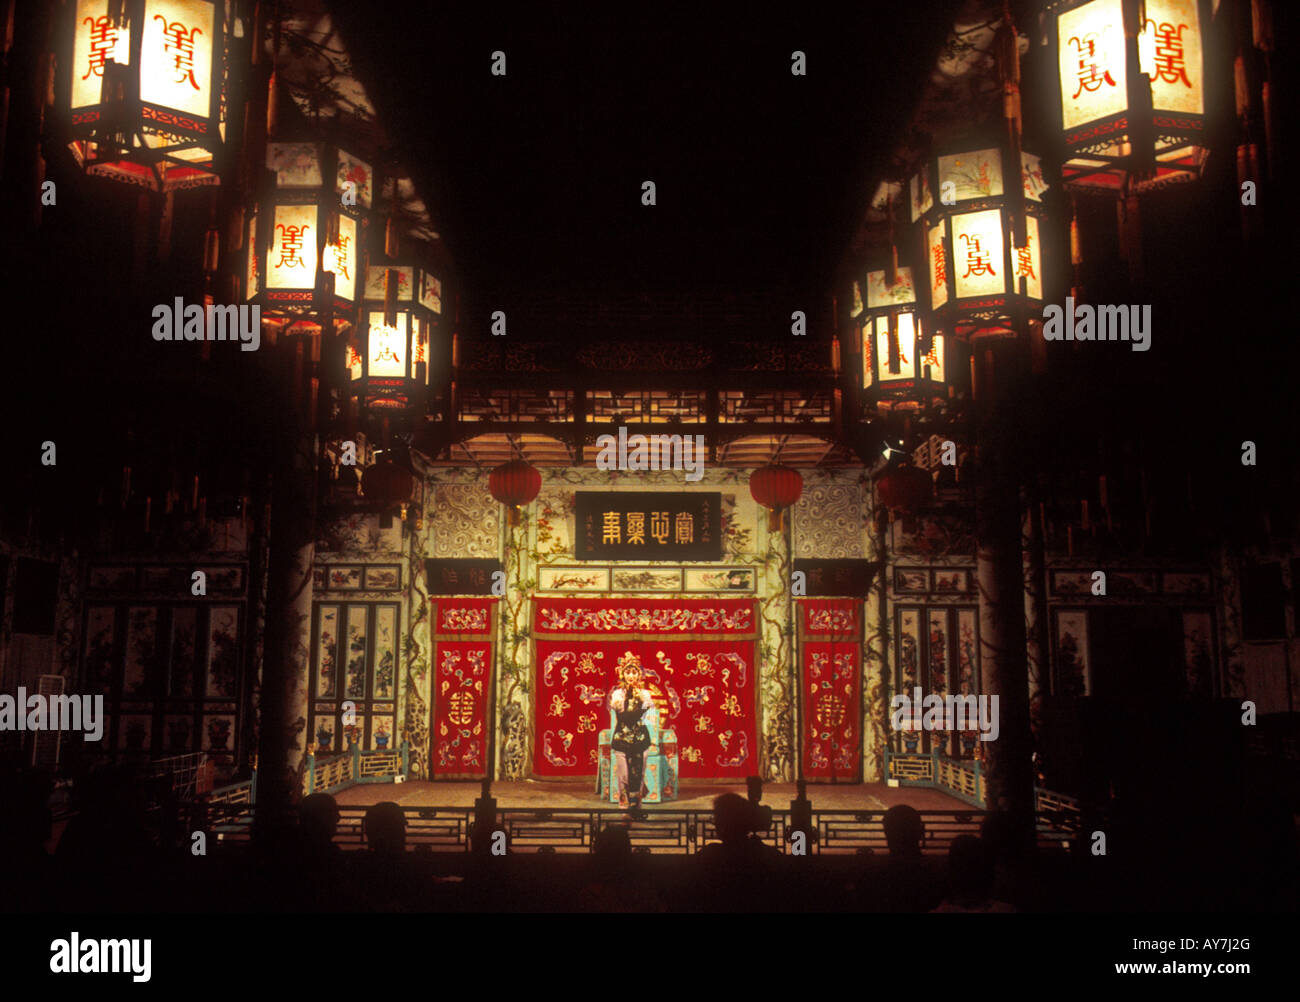 Beijing Opera in traditional Qing dynasty Huguang guild hall theatre - Stock Image